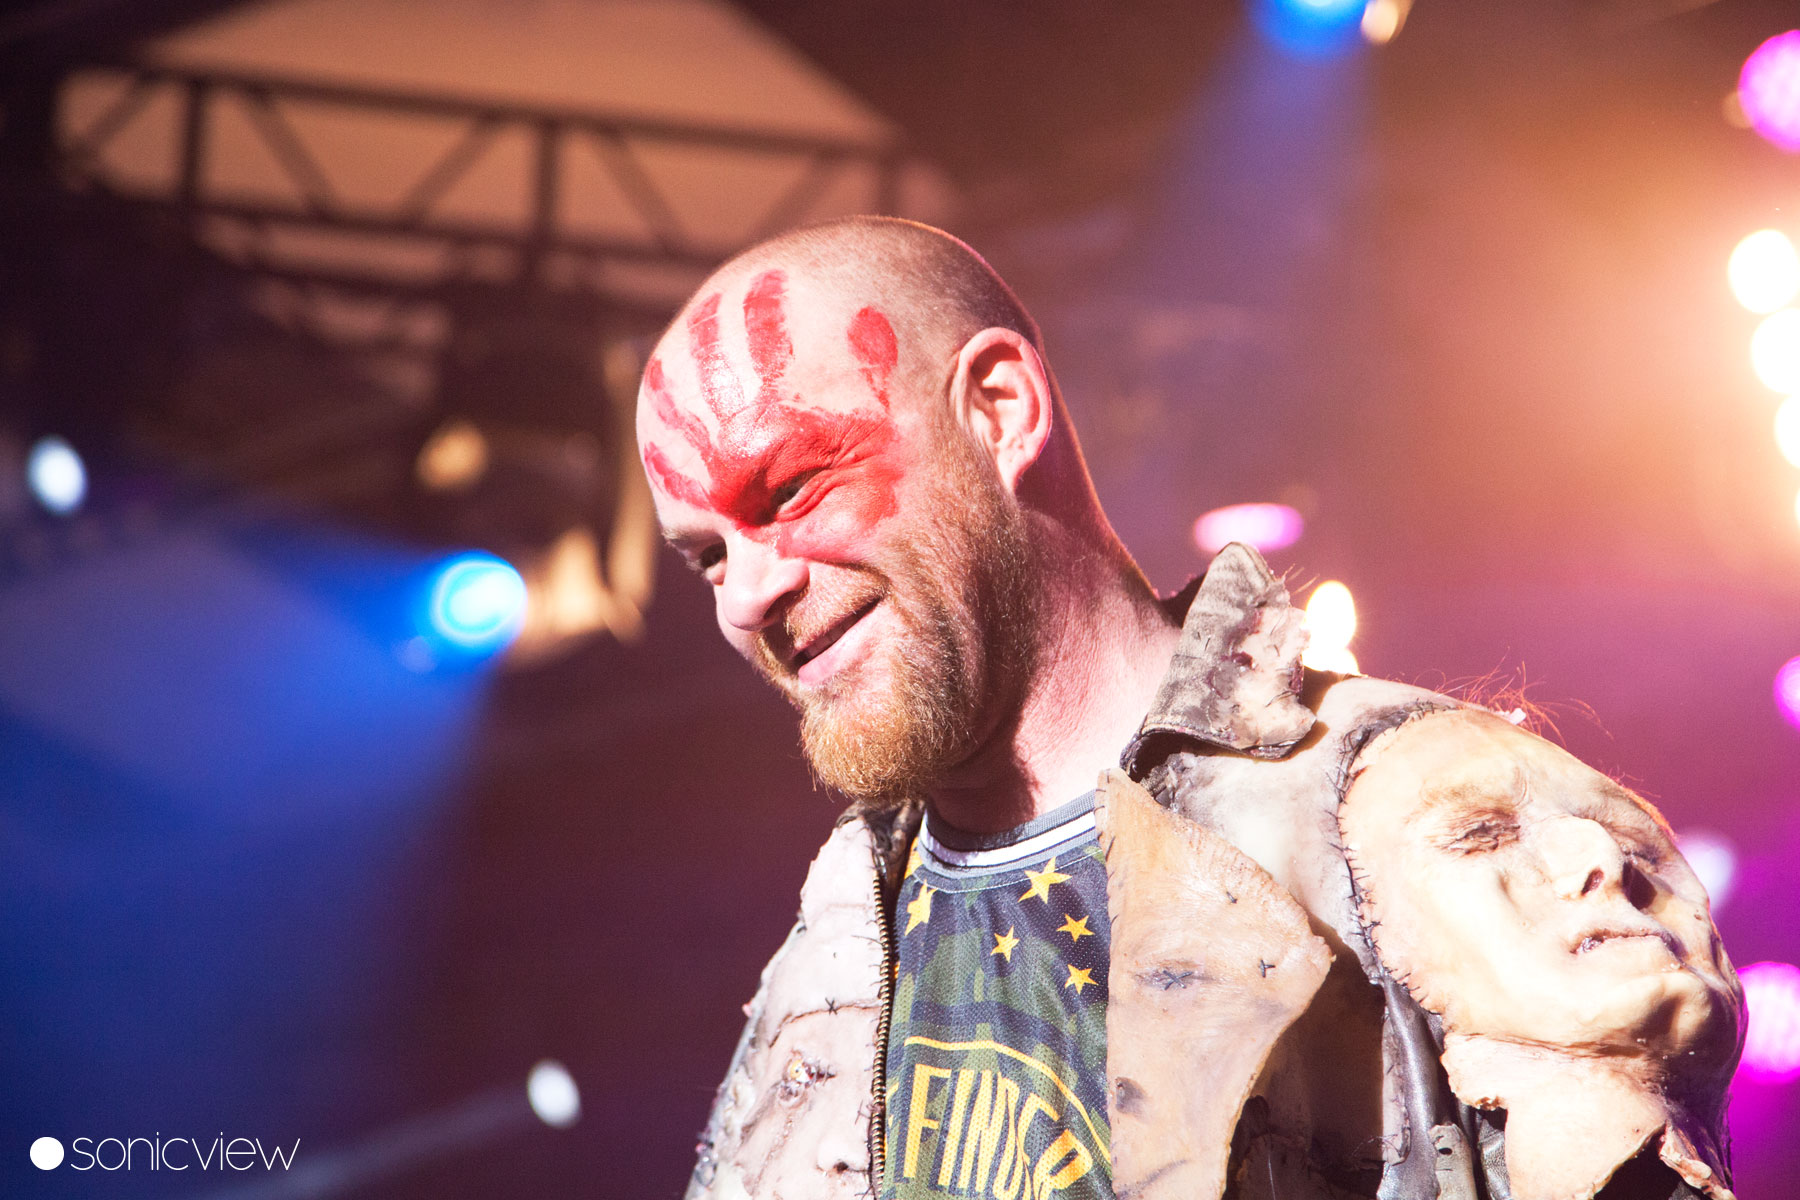 5FDP: Live at TAP1, 7th November 2015, Copenhagen, Denmark